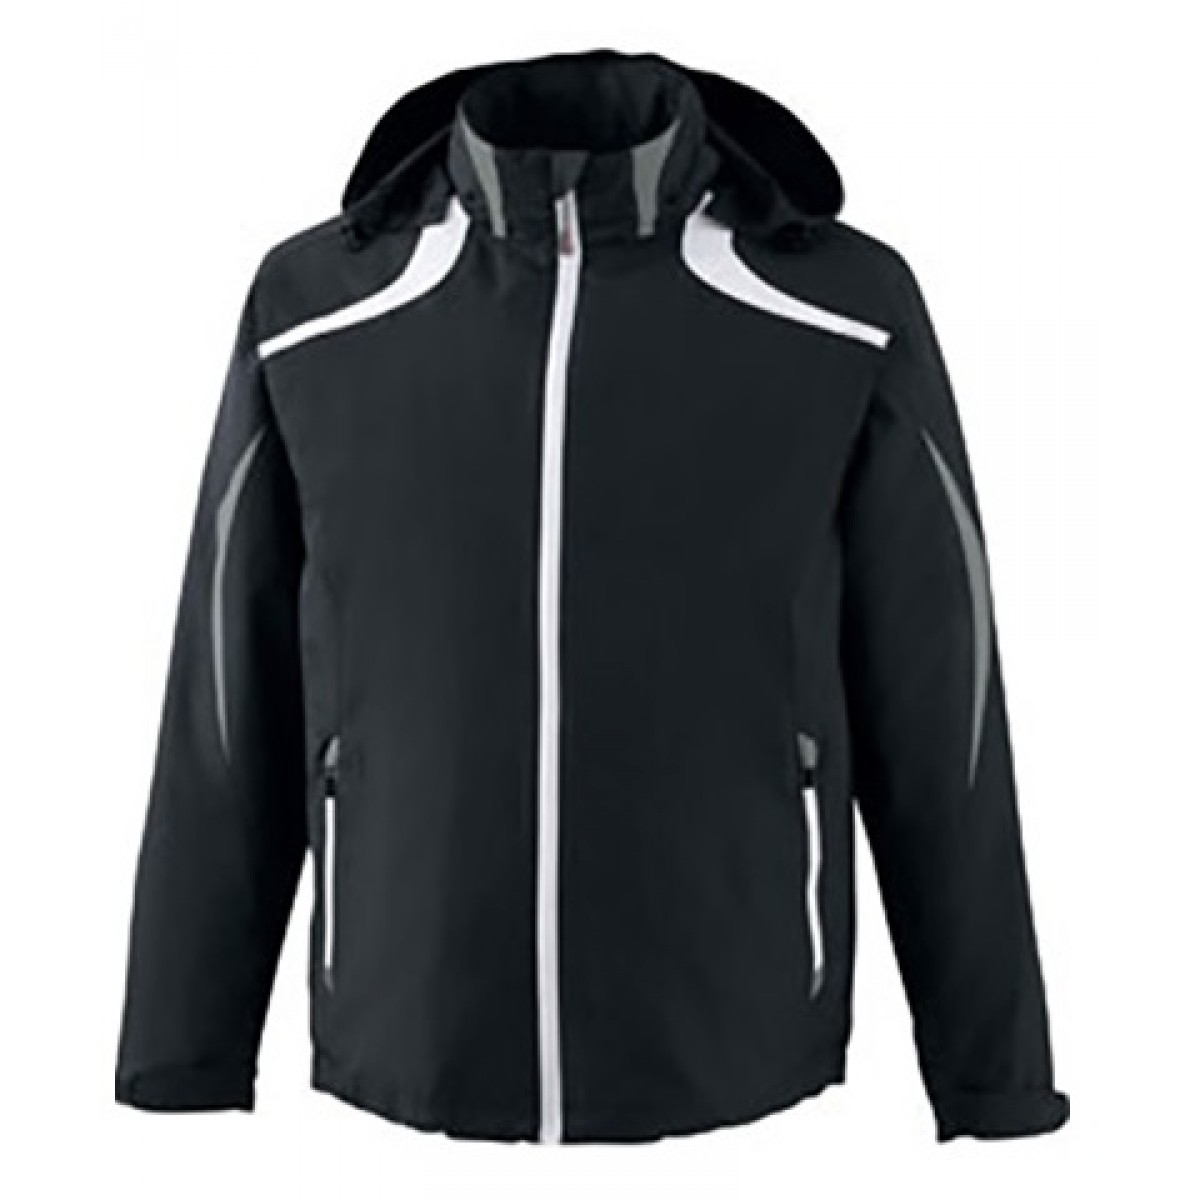 North End Men's Impact Active Lite Colorblock Jacket-Black-L